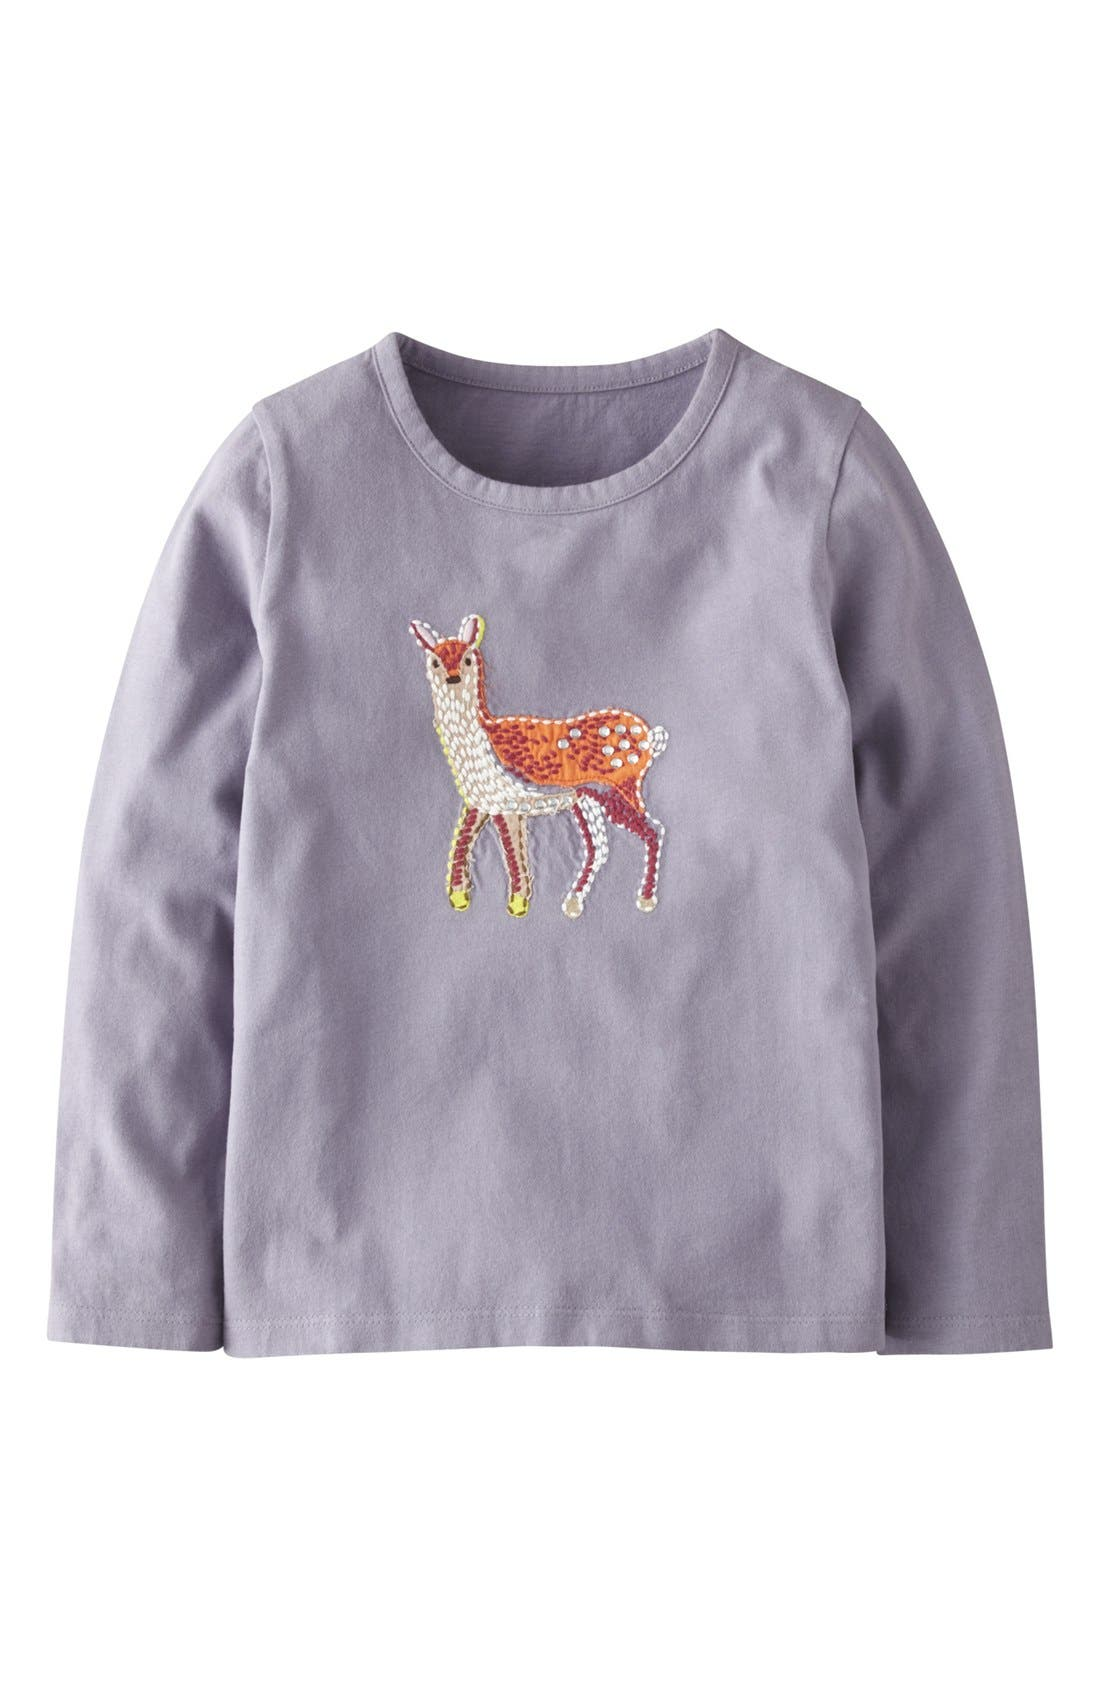 Alternate Image 1 Selected - Mini Boden 'Woodland' Appliqué Long Sleeve Tee (Toddler Girls, Little Girls & Big Girls)